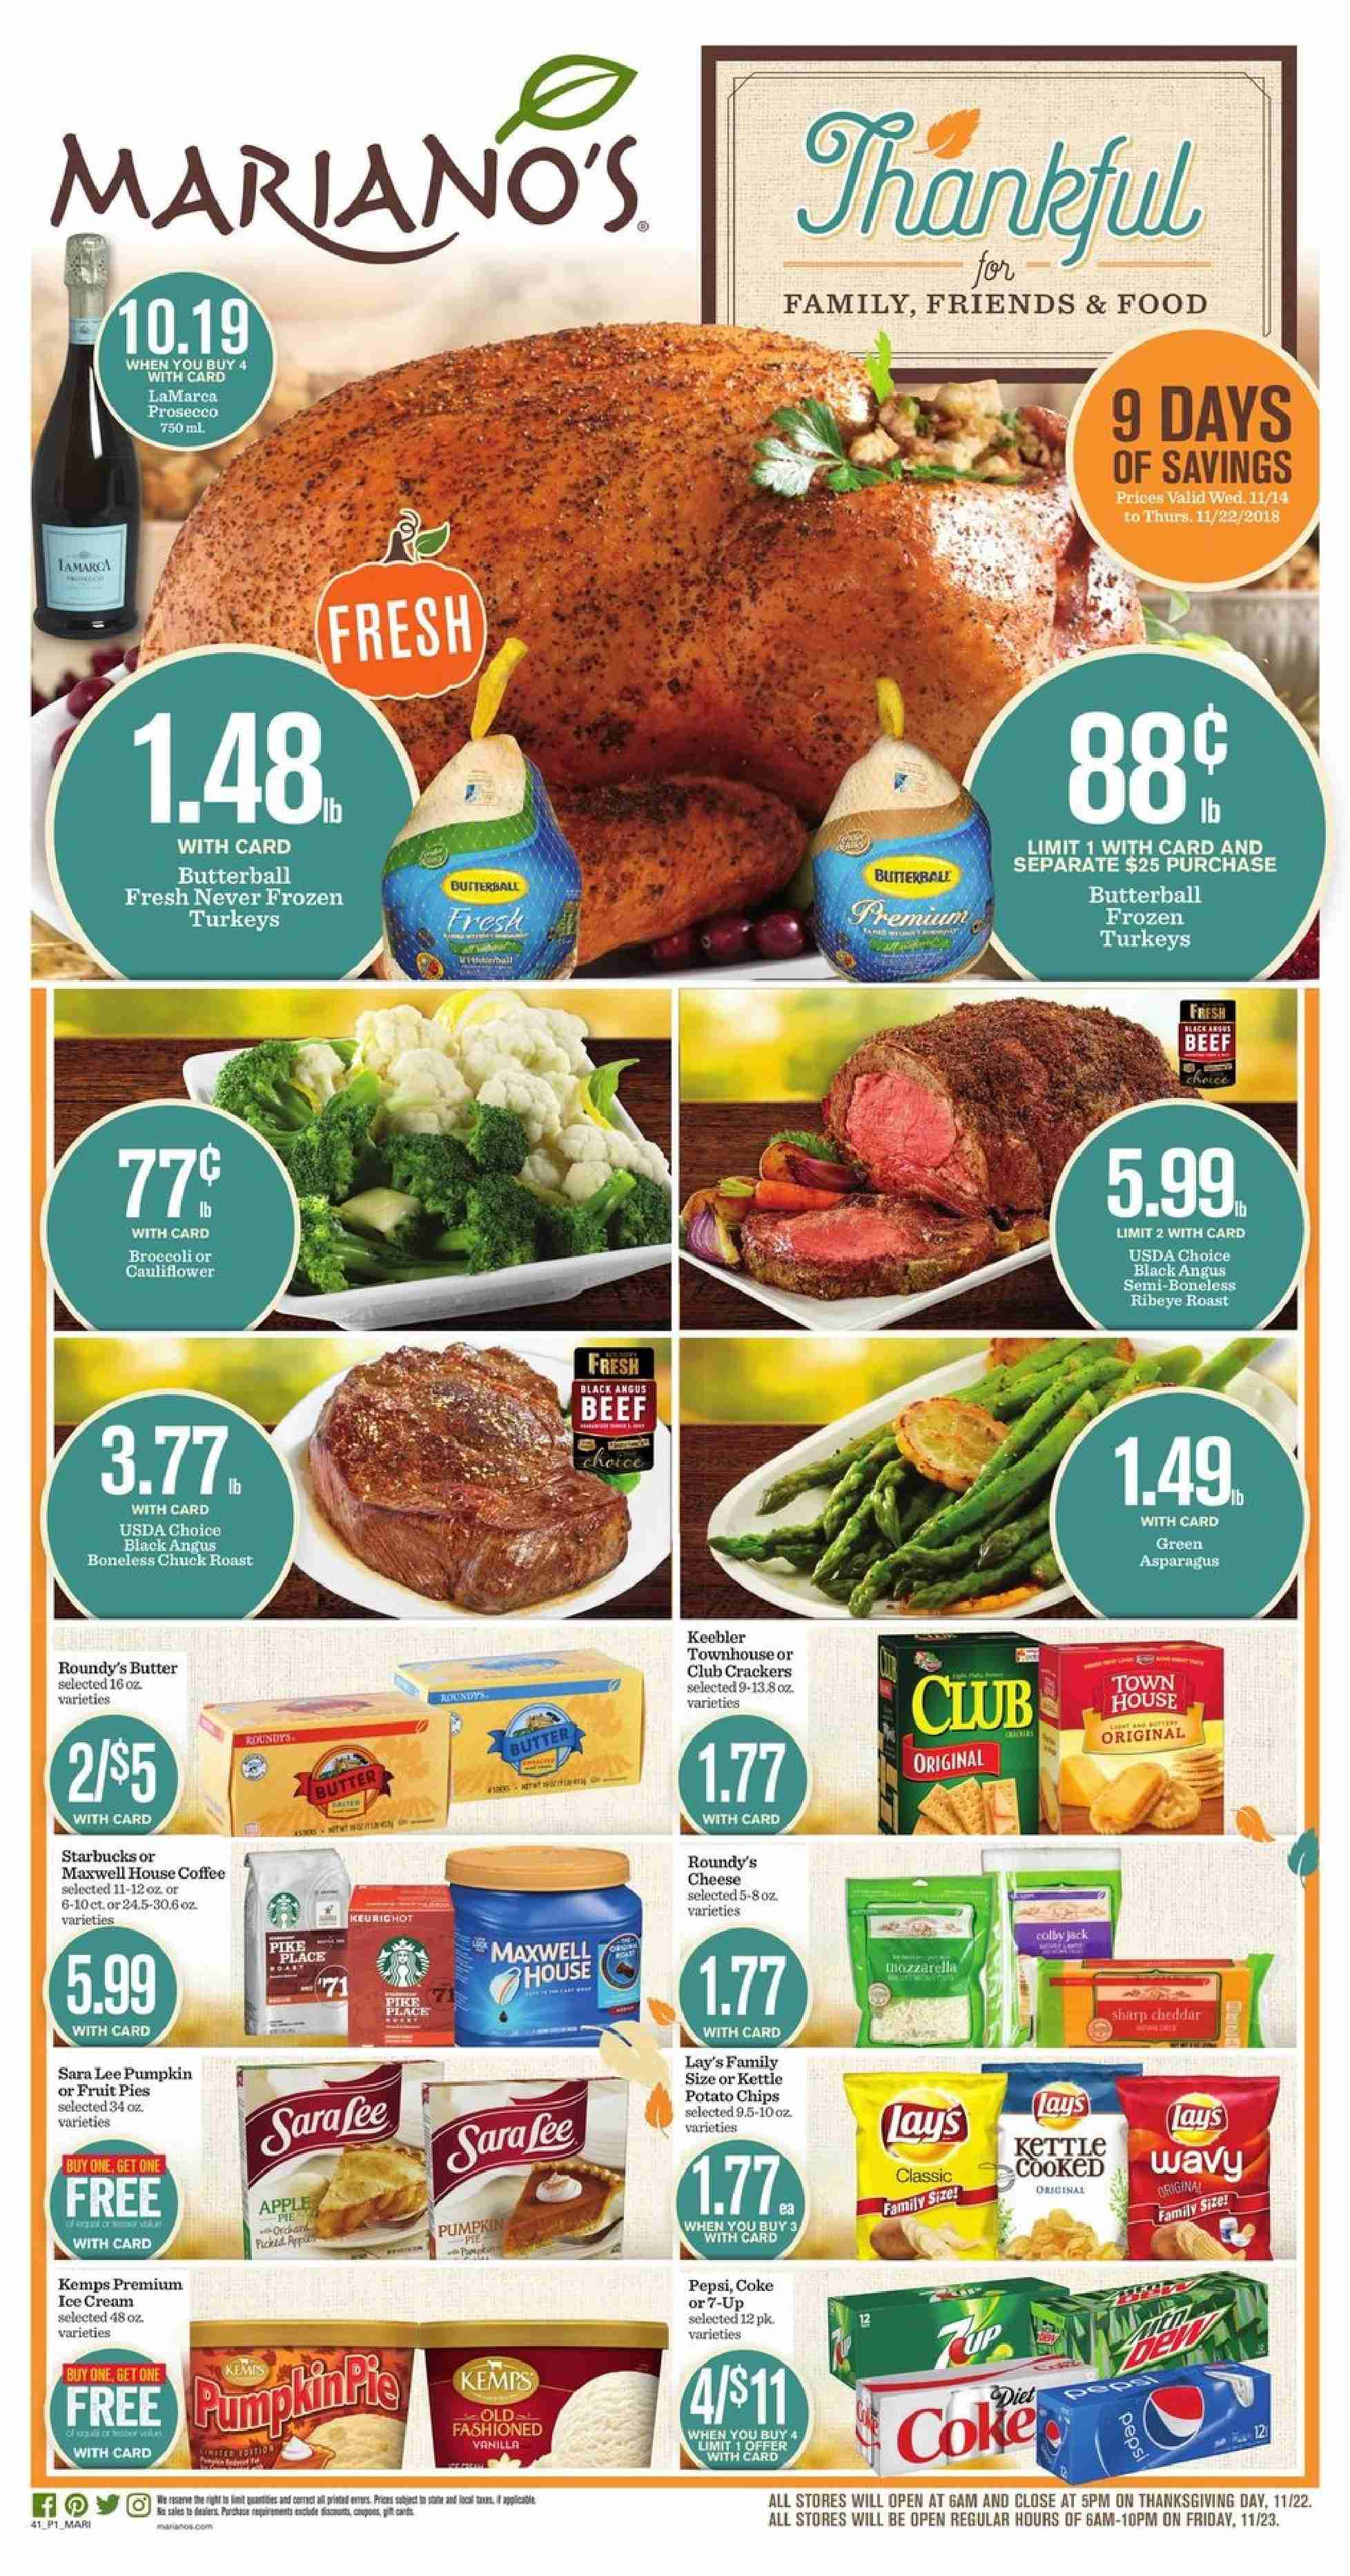 Mariano's flyer 11.14.2018 - 11.22.2018   Weekly-ads.us